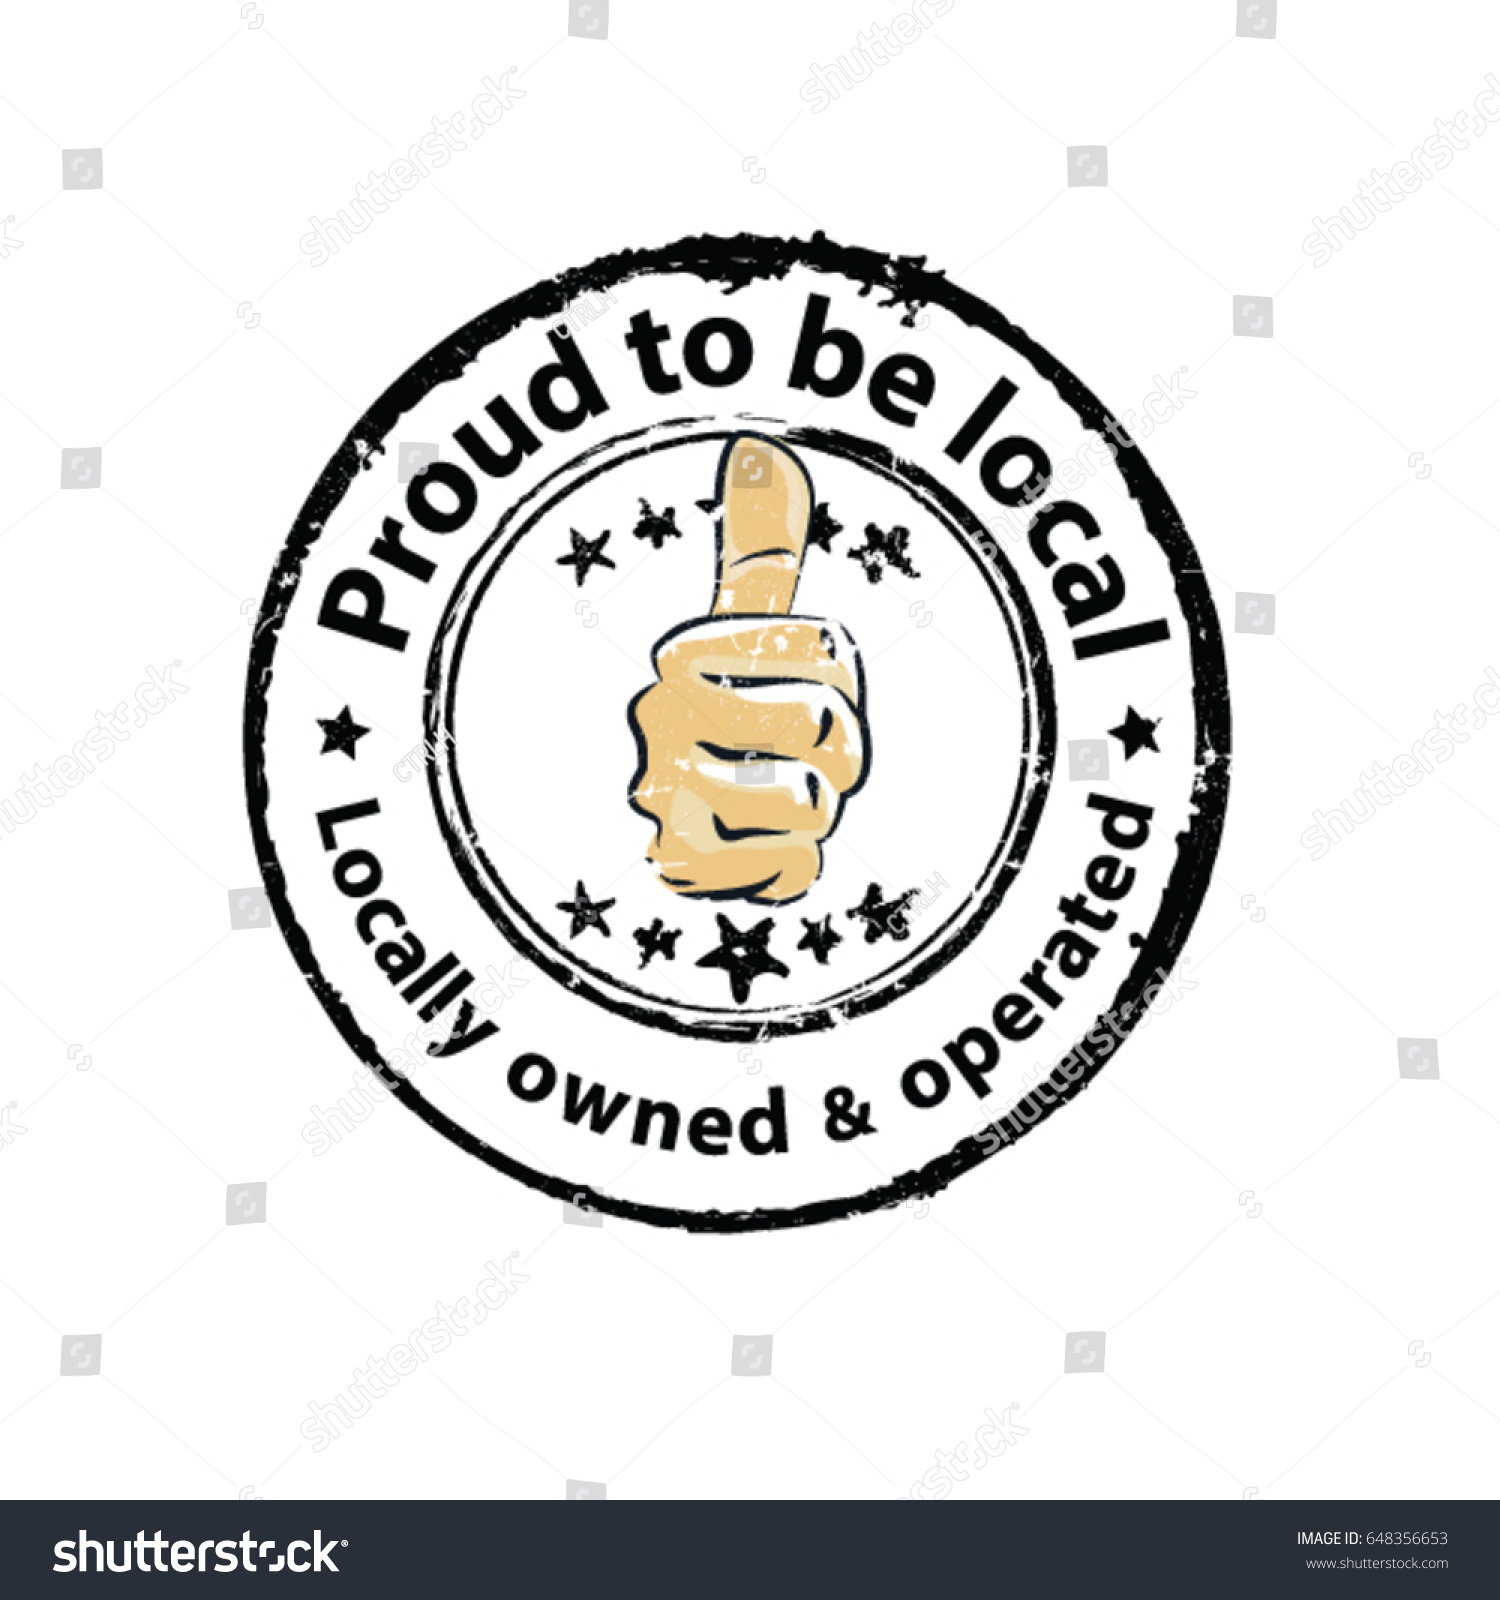 Proud Be Local Locally Owned Operated Stock Vector ...